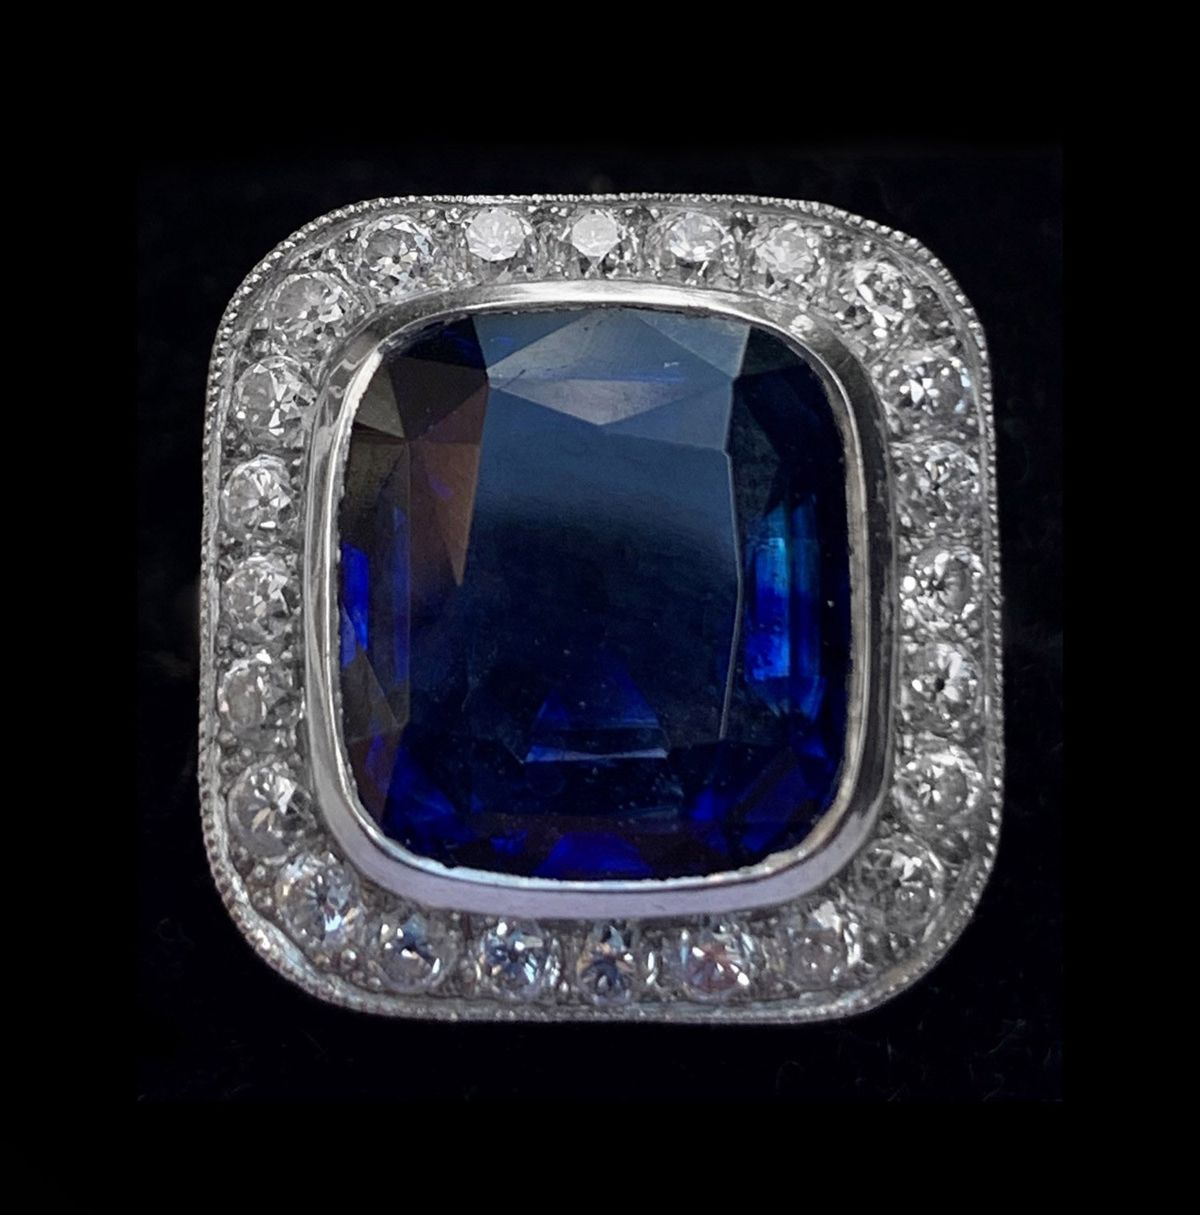 A sapphire and diamond ring which sold for more than £8,000